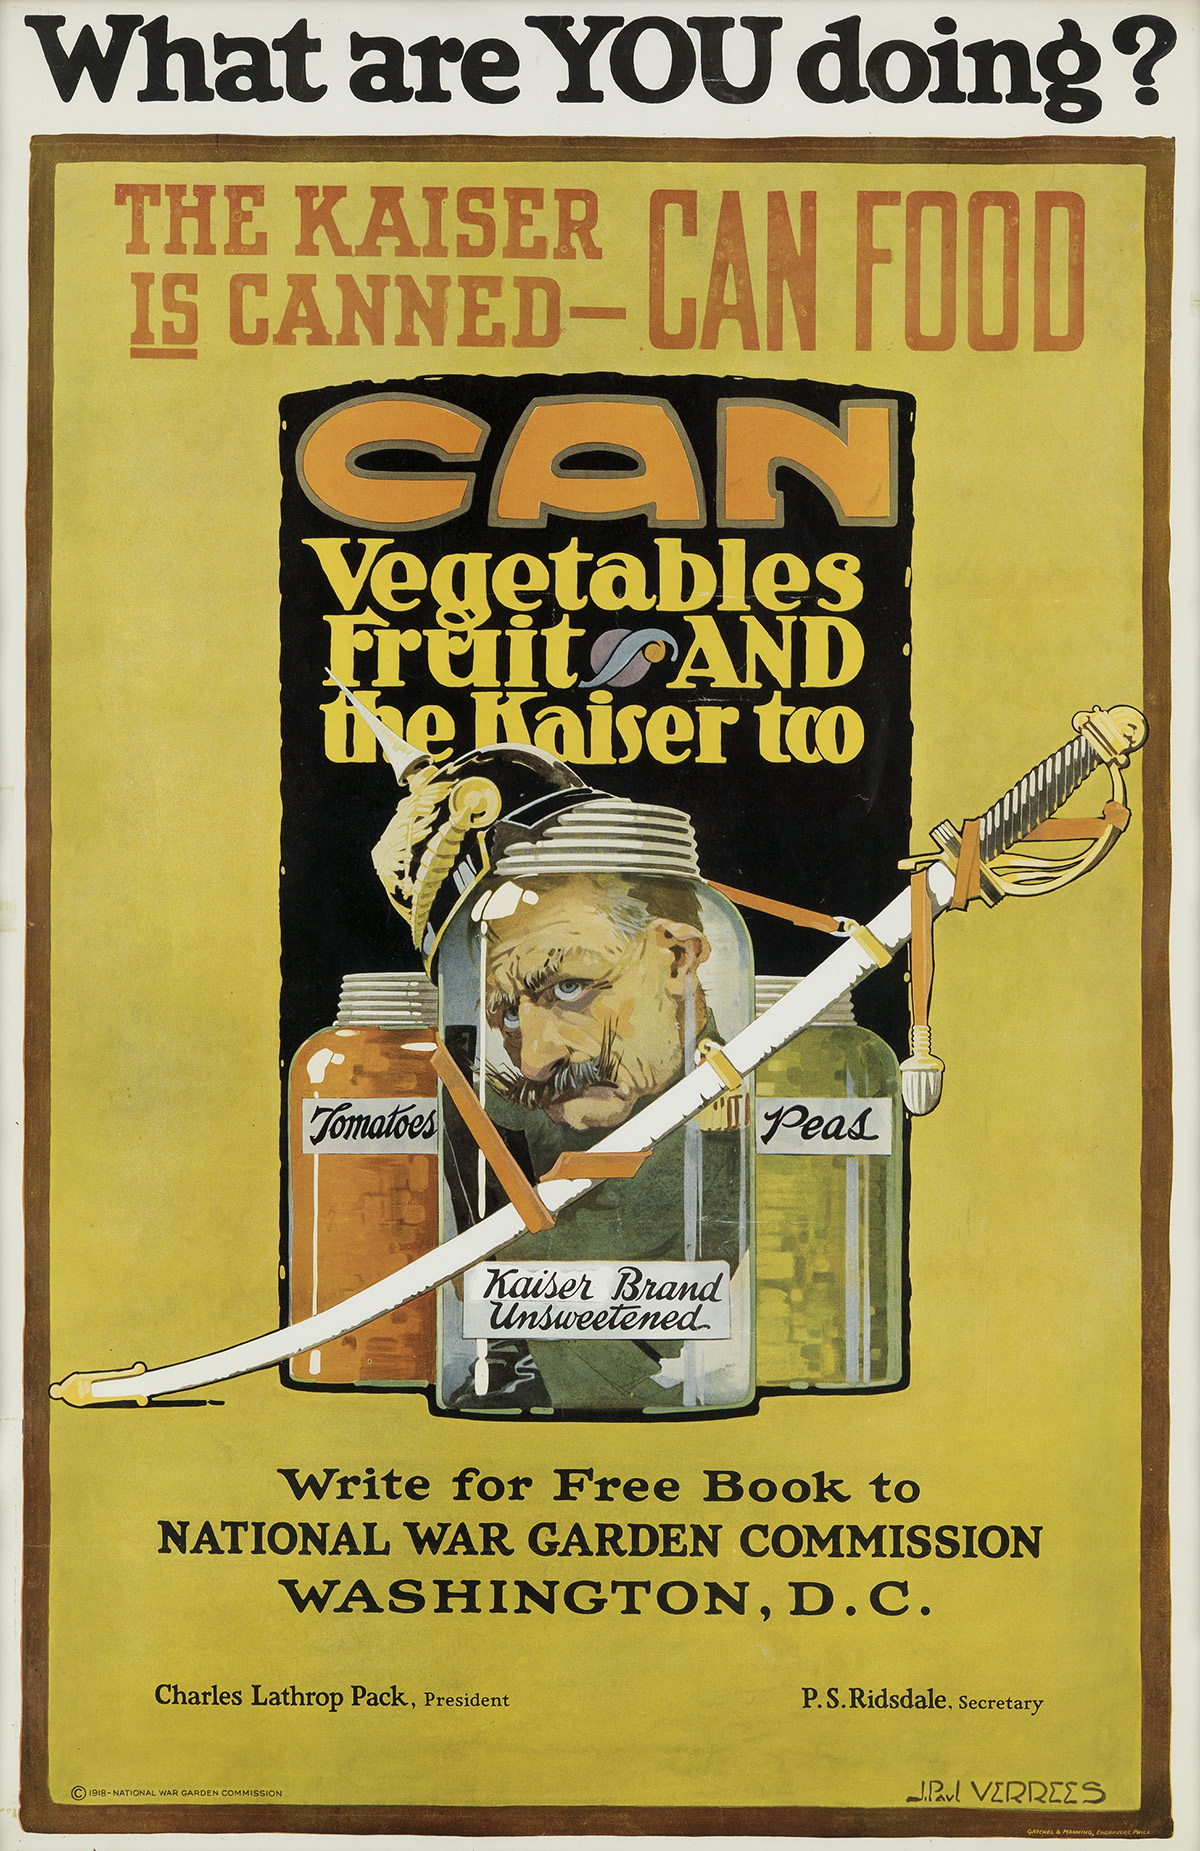 J. PAUL VERREES (1889-1942). WHAT ARE YOU DOING? / THE KAISER IS CANNED. 1918. 32x21 inches, 83x54 cm. Gatchel & Manning Engravers, Phi